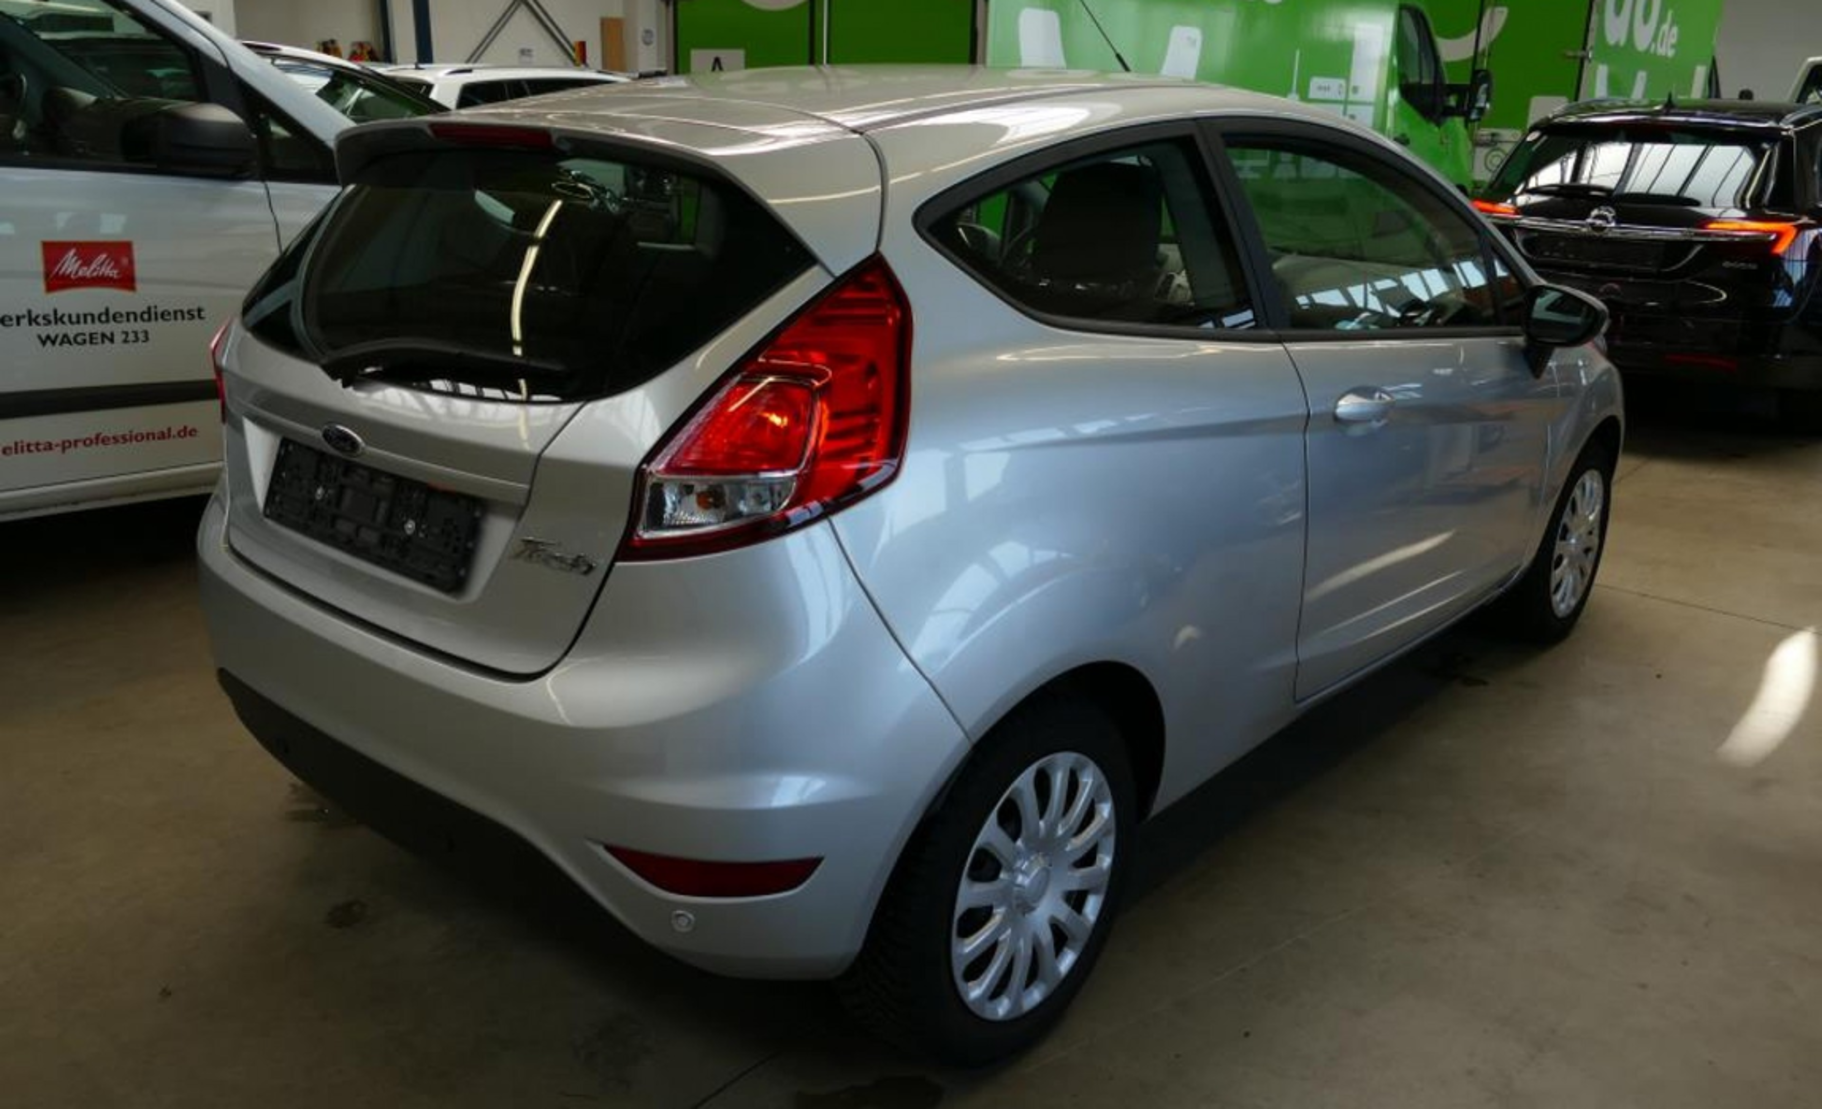 Ford Fiesta 1.0, SYNC Edition (621192) detail2